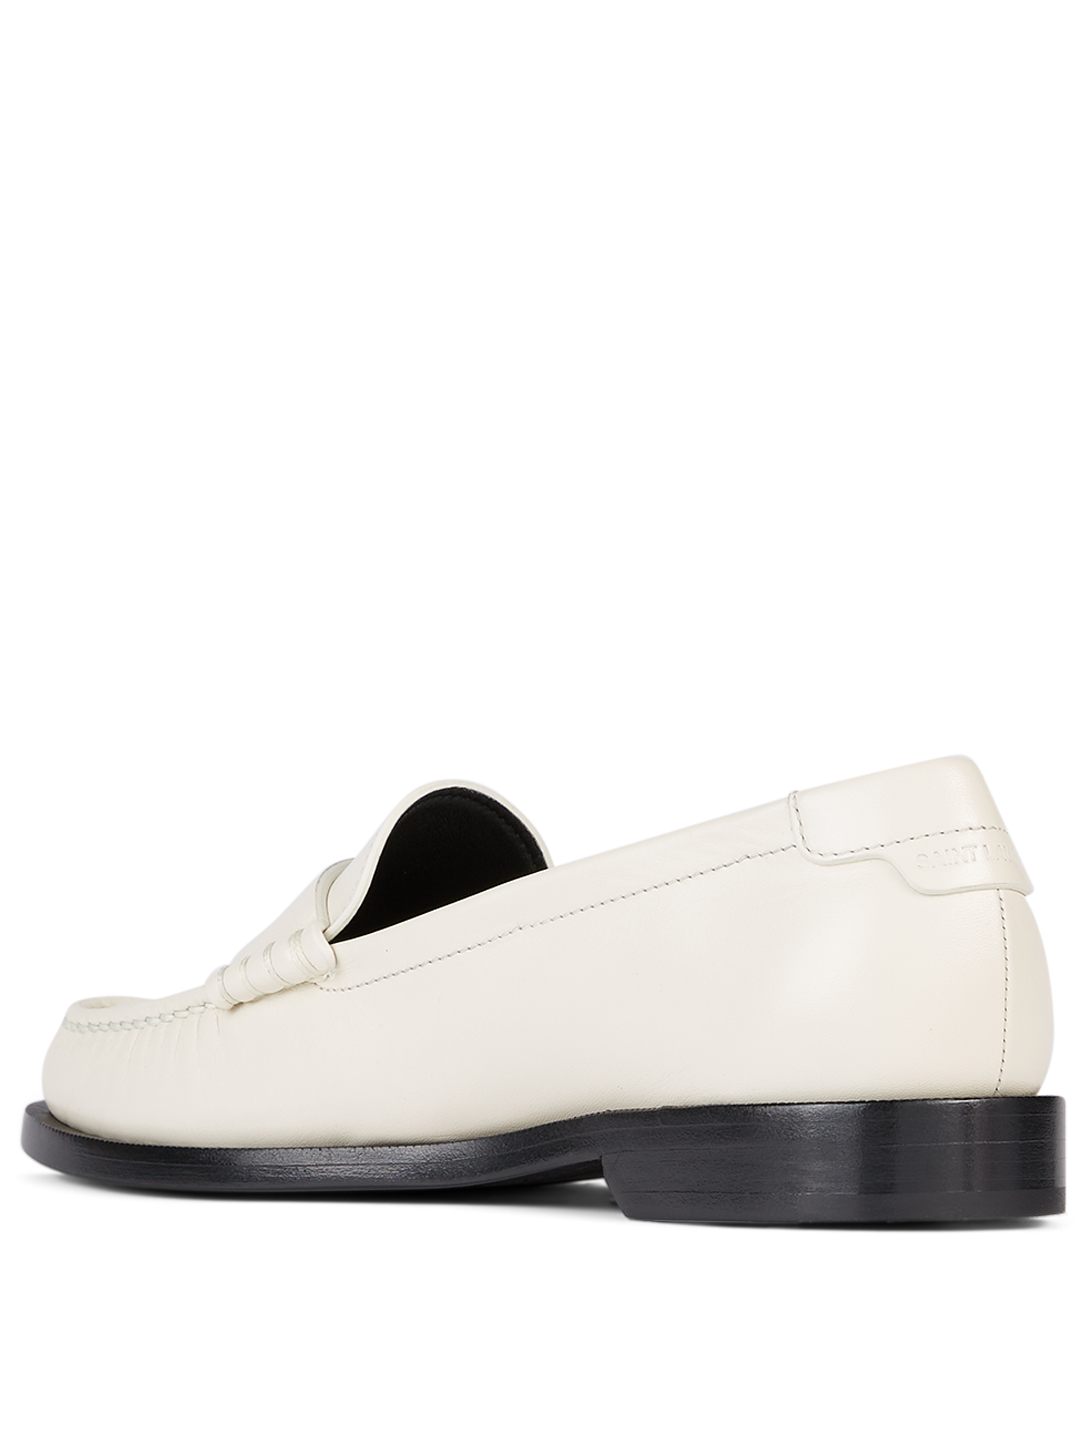 SAINT LAURENT Mocassins Le Loafer en cuir Femmes Blanc